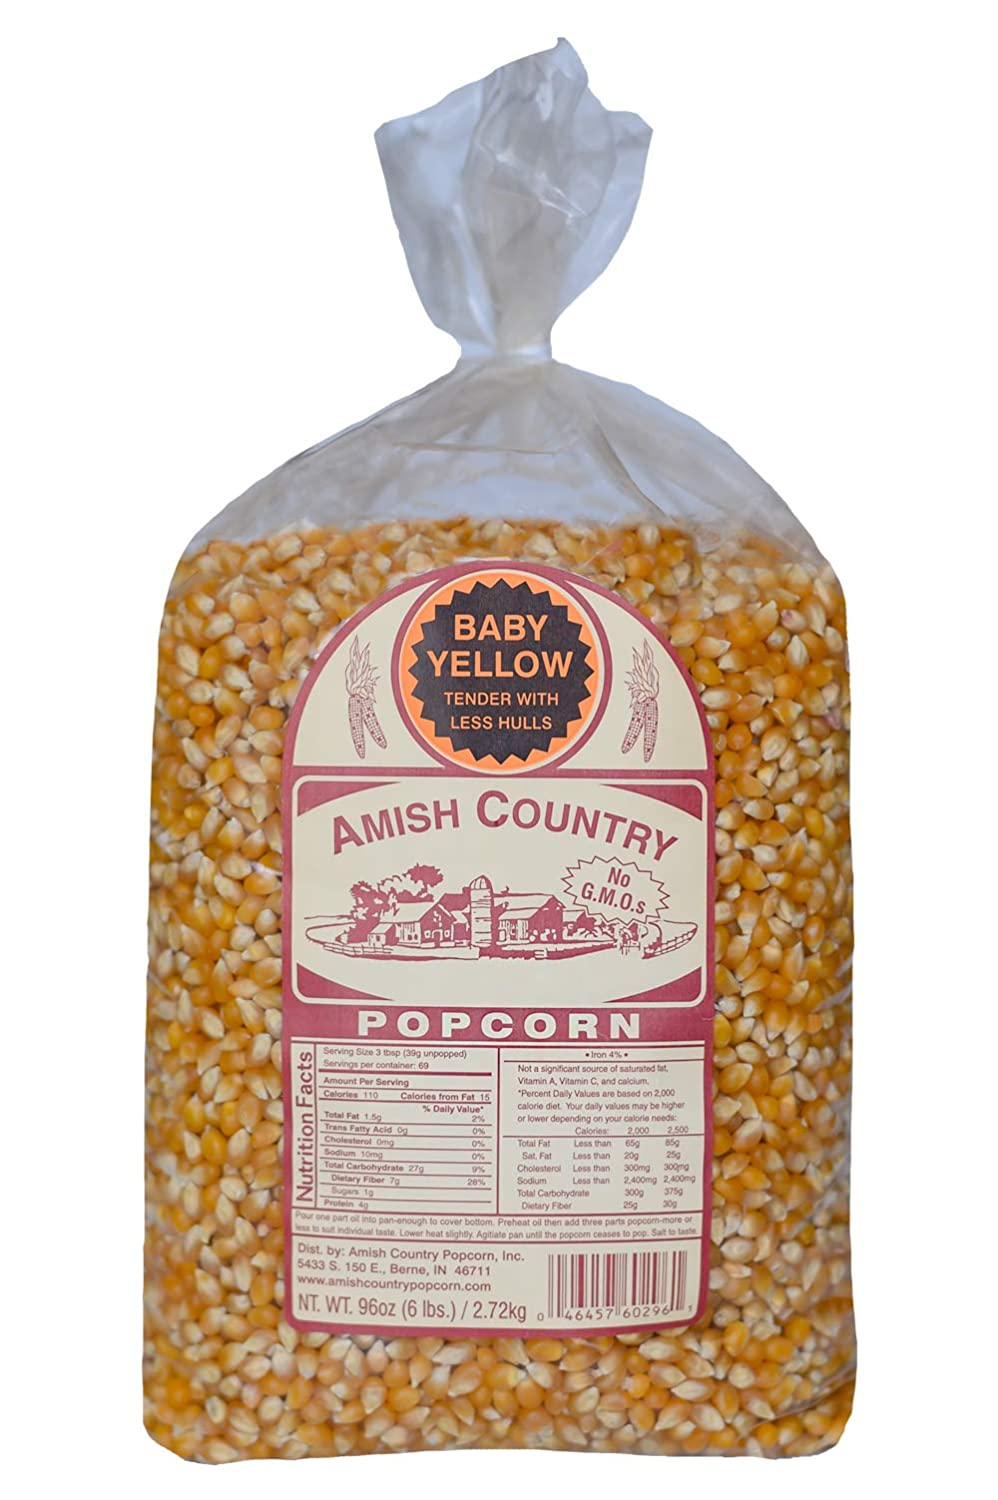 Amish Country Popcorn | 6 lb Bag | Baby Yellow Popcorn Kernels | Old Fashioned with Recipe Guide (Baby Yellow - 6 lb Bag)